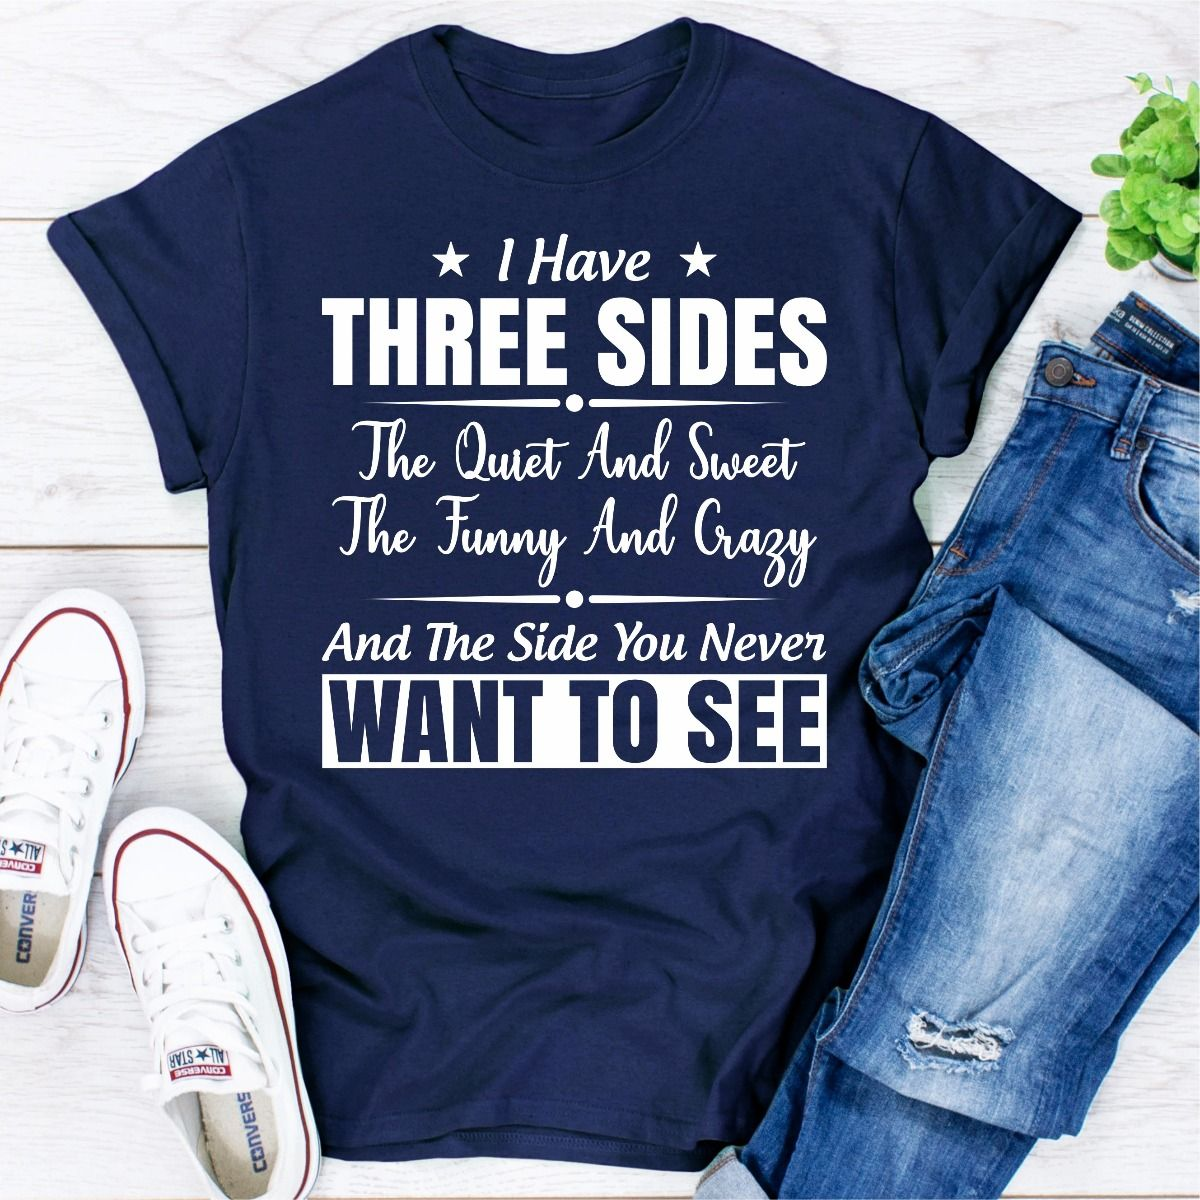 I Have Three Sides (Navy / 3XL)